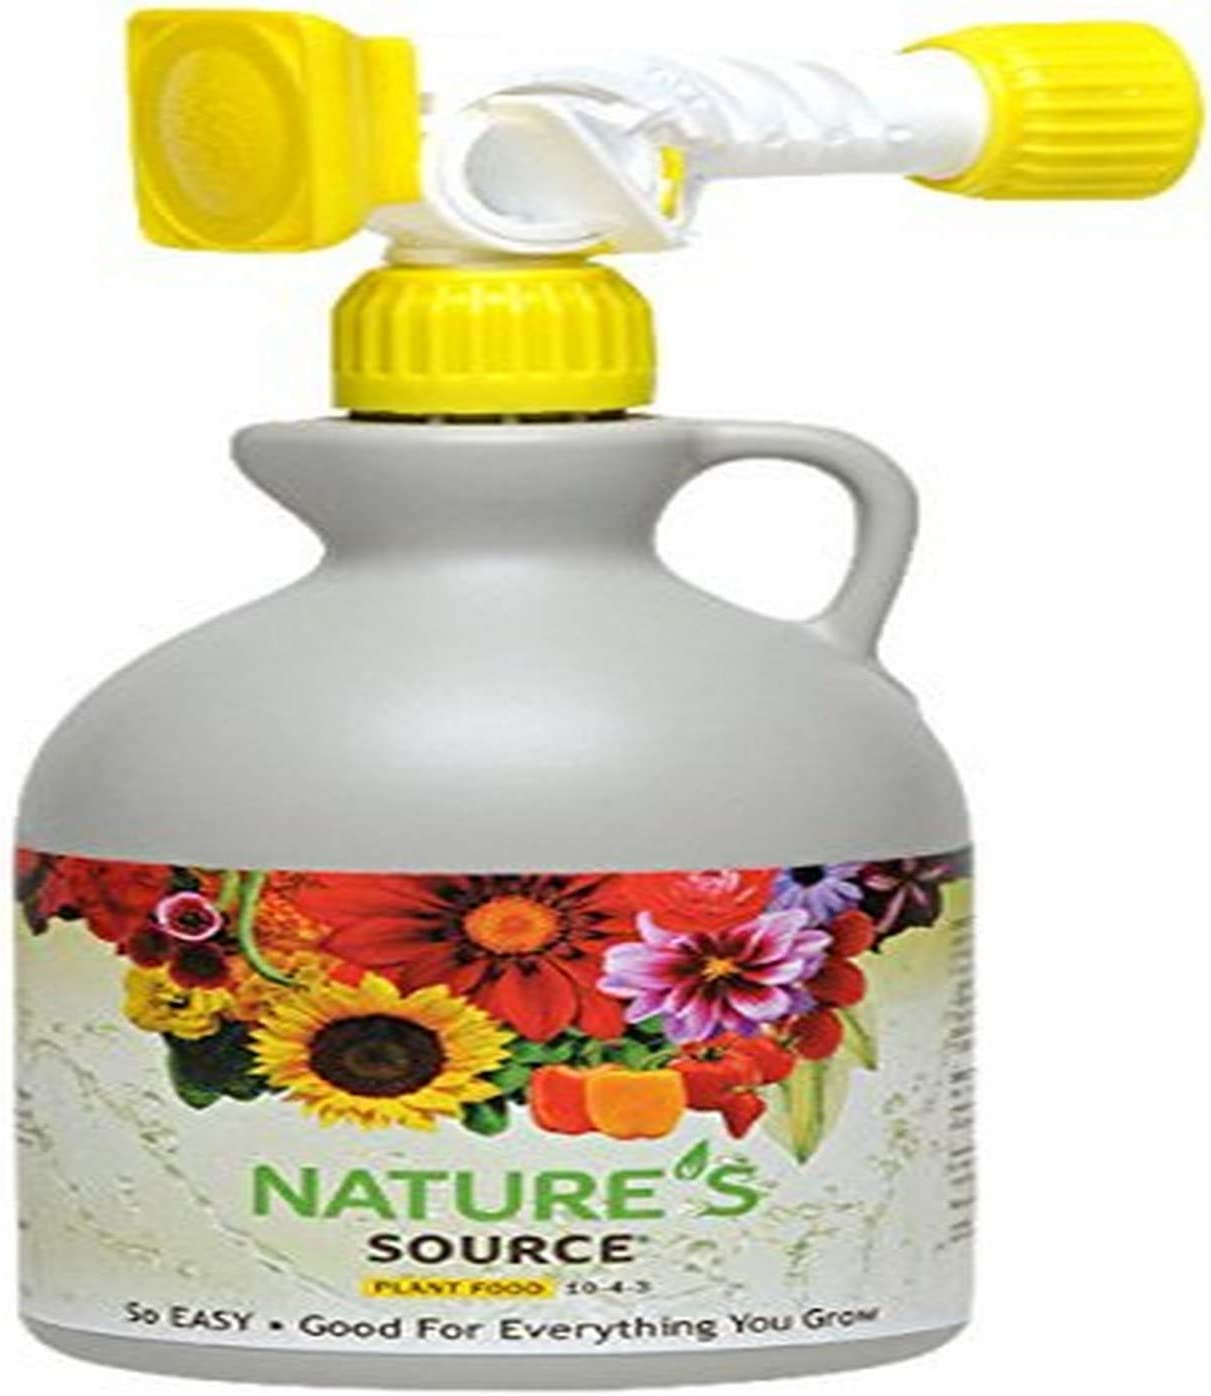 Nature's Source 7531-US Ready-to-Use Hose End Plant Food, 32 oz